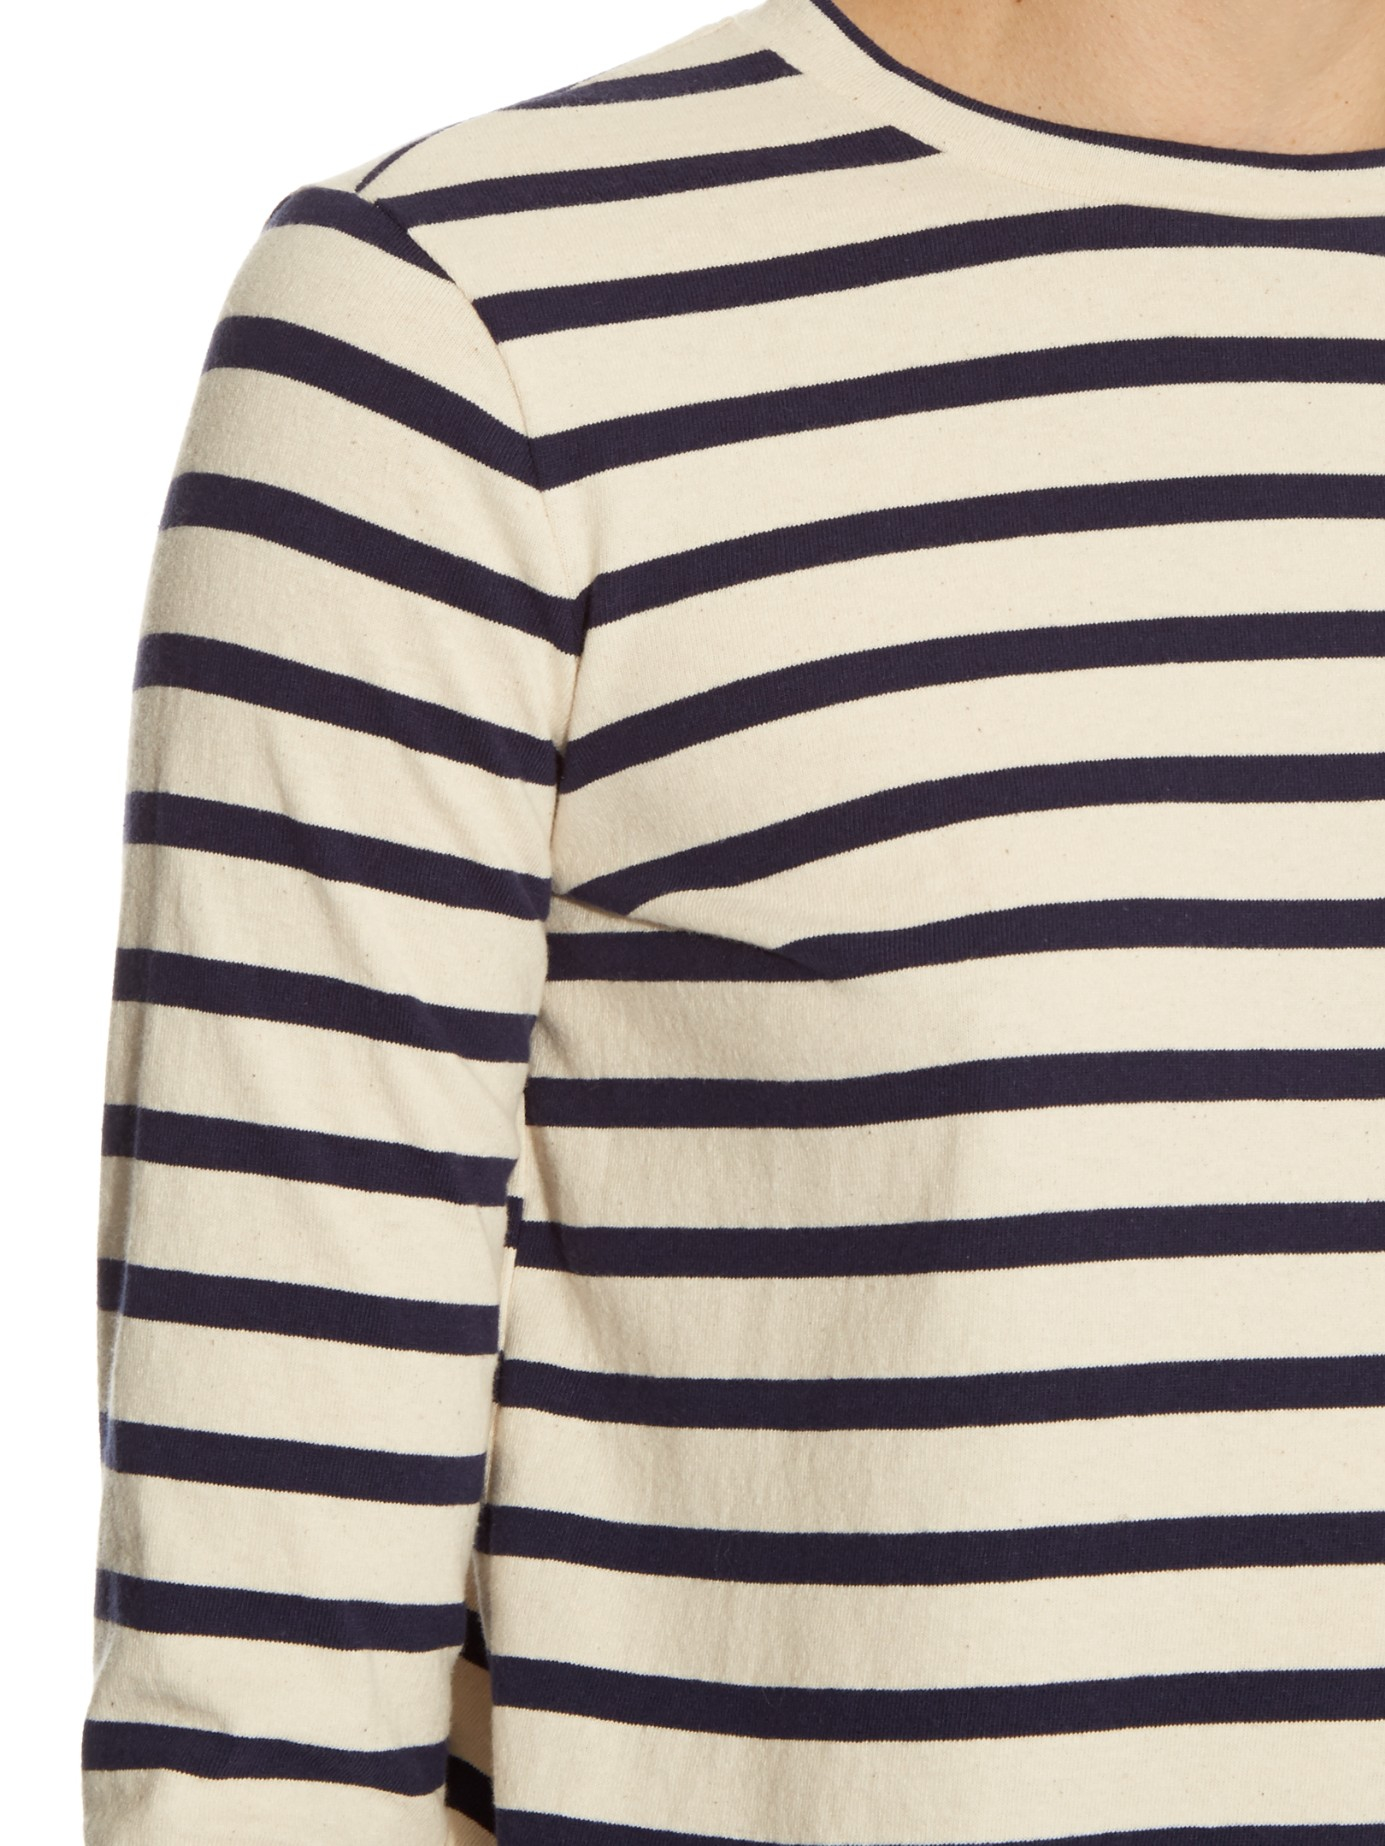 Raey striped crew neck long sleeved t shirt in blue lyst for Navy blue striped long sleeve shirt